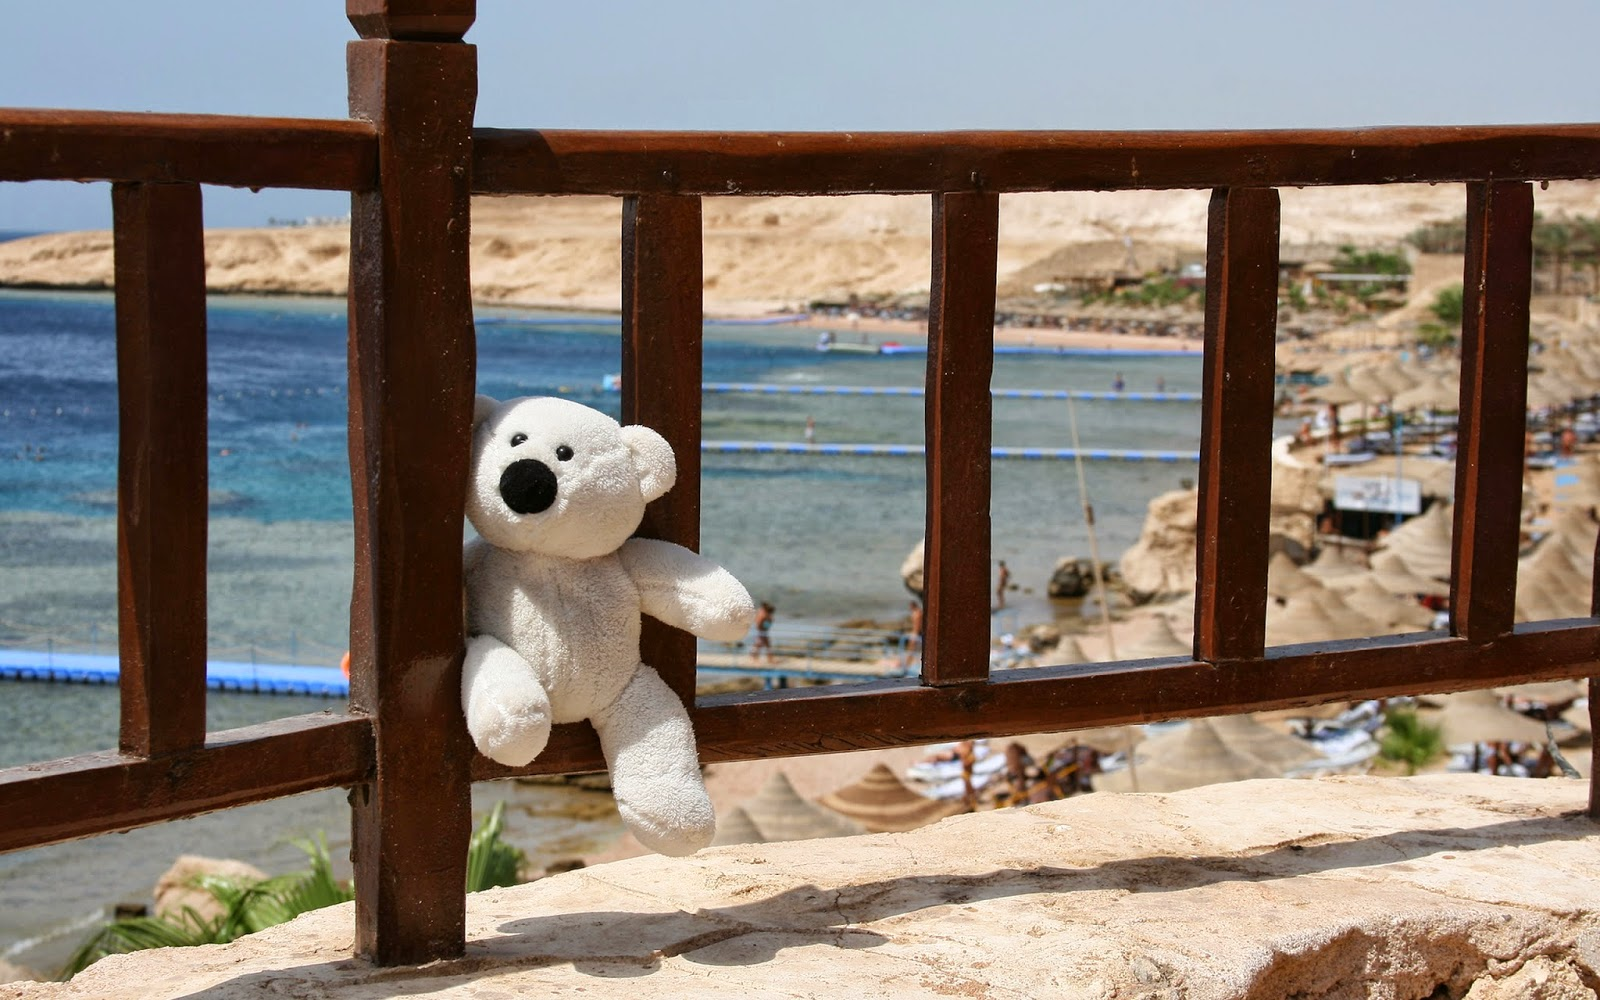 Free-download-HD-Toy-Teddy-left-alone-2560x1600.jpg